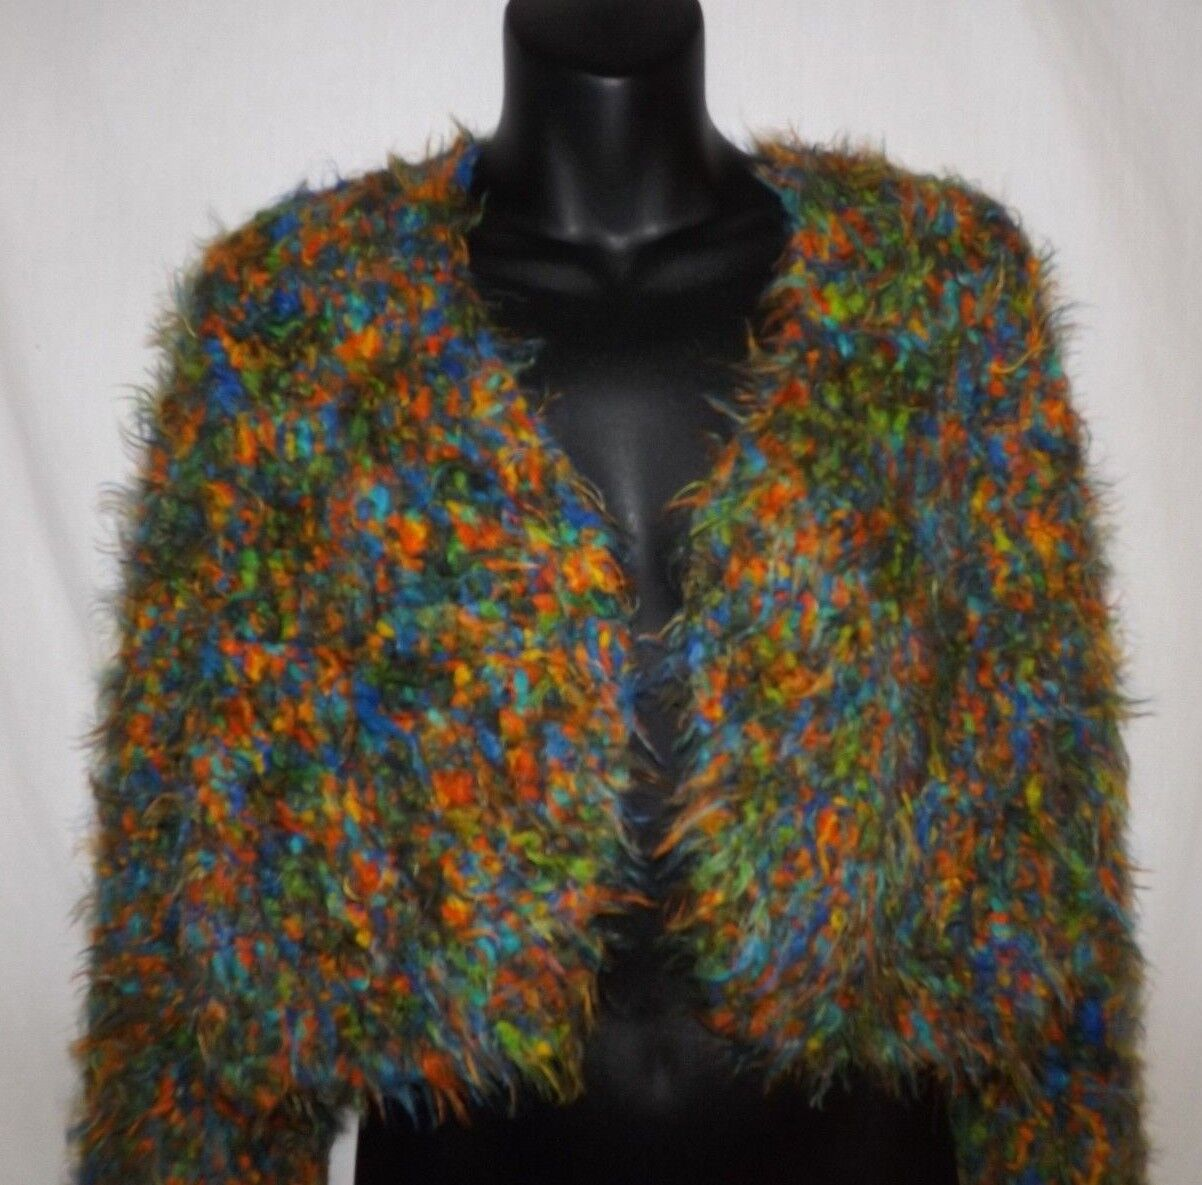 BOHO Hippie Hand Crocheted Cropped Long Sleeved Sweater Green Multicolor Yarn